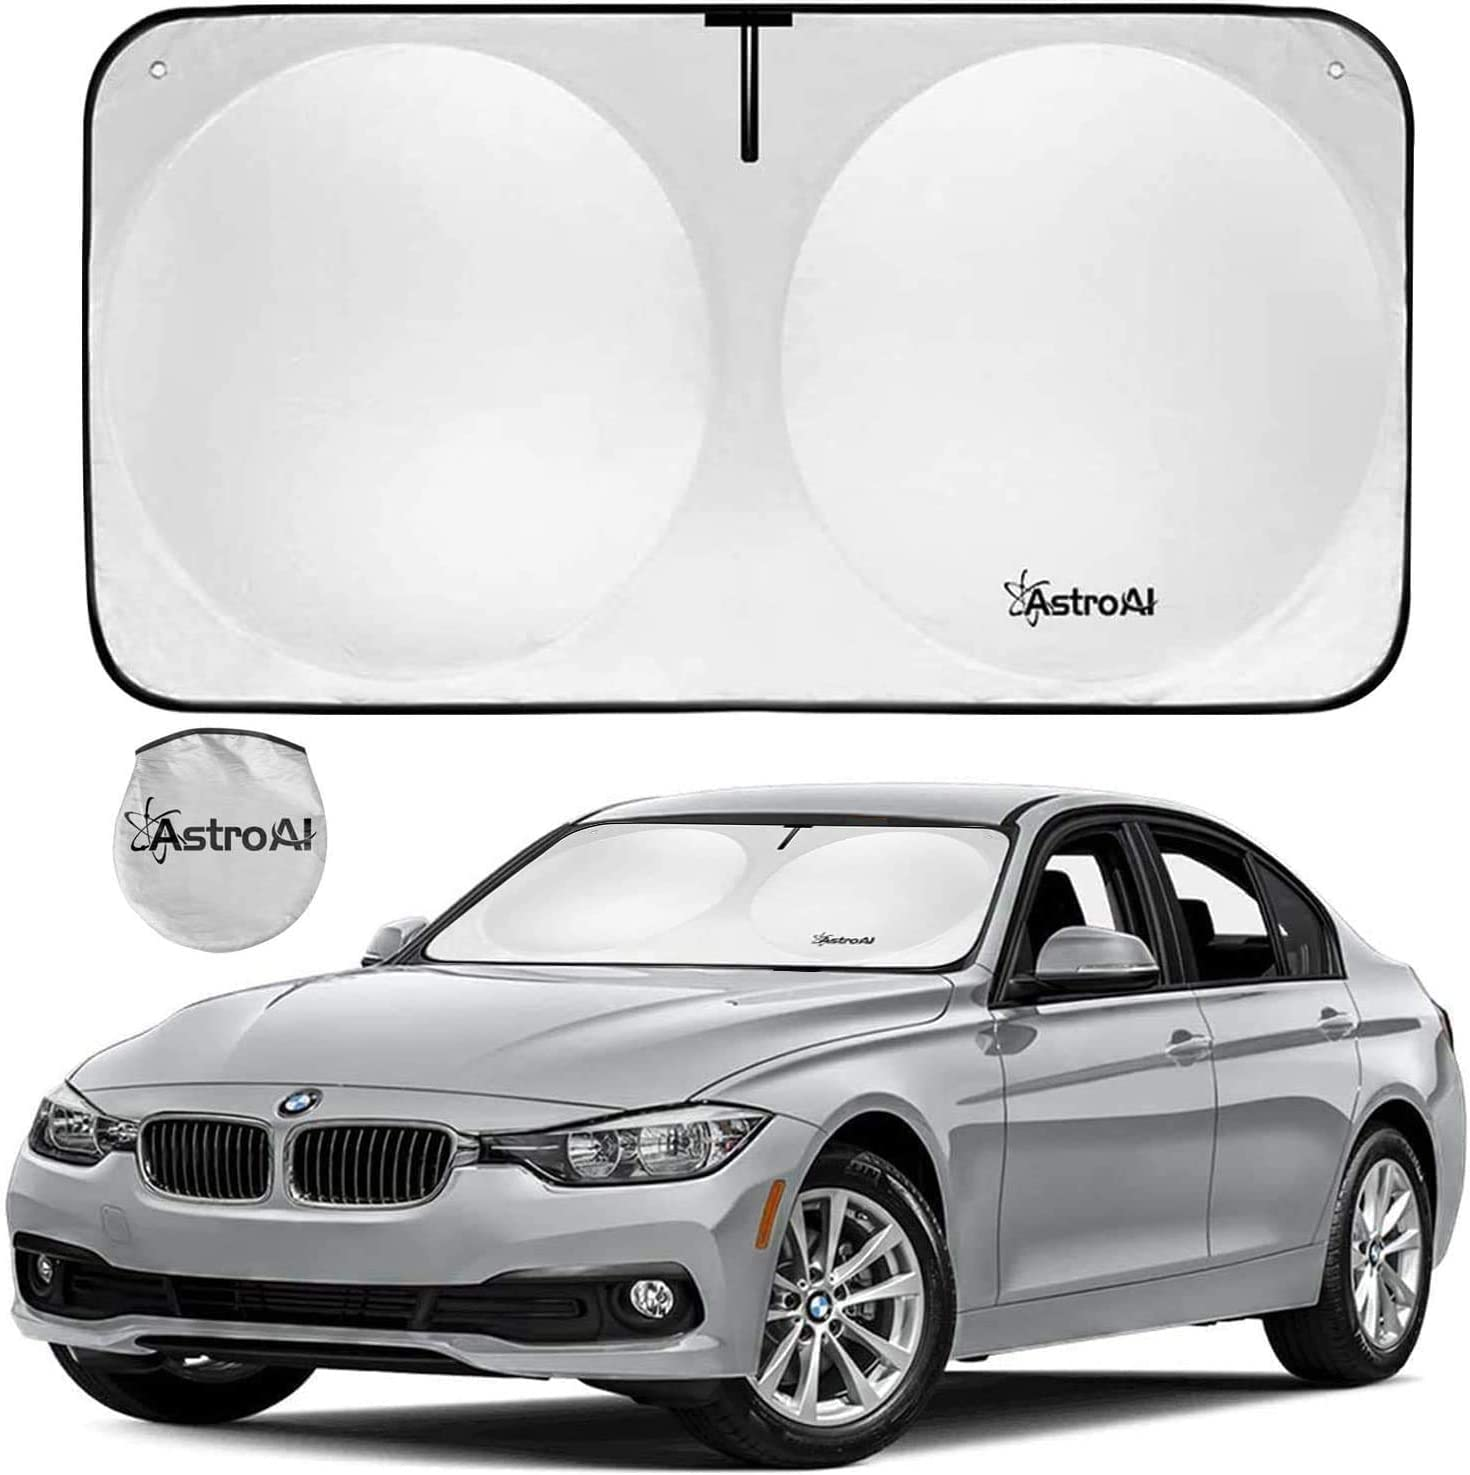 Suitable For Windshields Of Various Sizes Anti-ultraviolet Interior Trim Can Prevent Ultraviolet Rays From Entering The Car Car Sun Shade To Keep The Car Cool Foldable Car Sun Visor